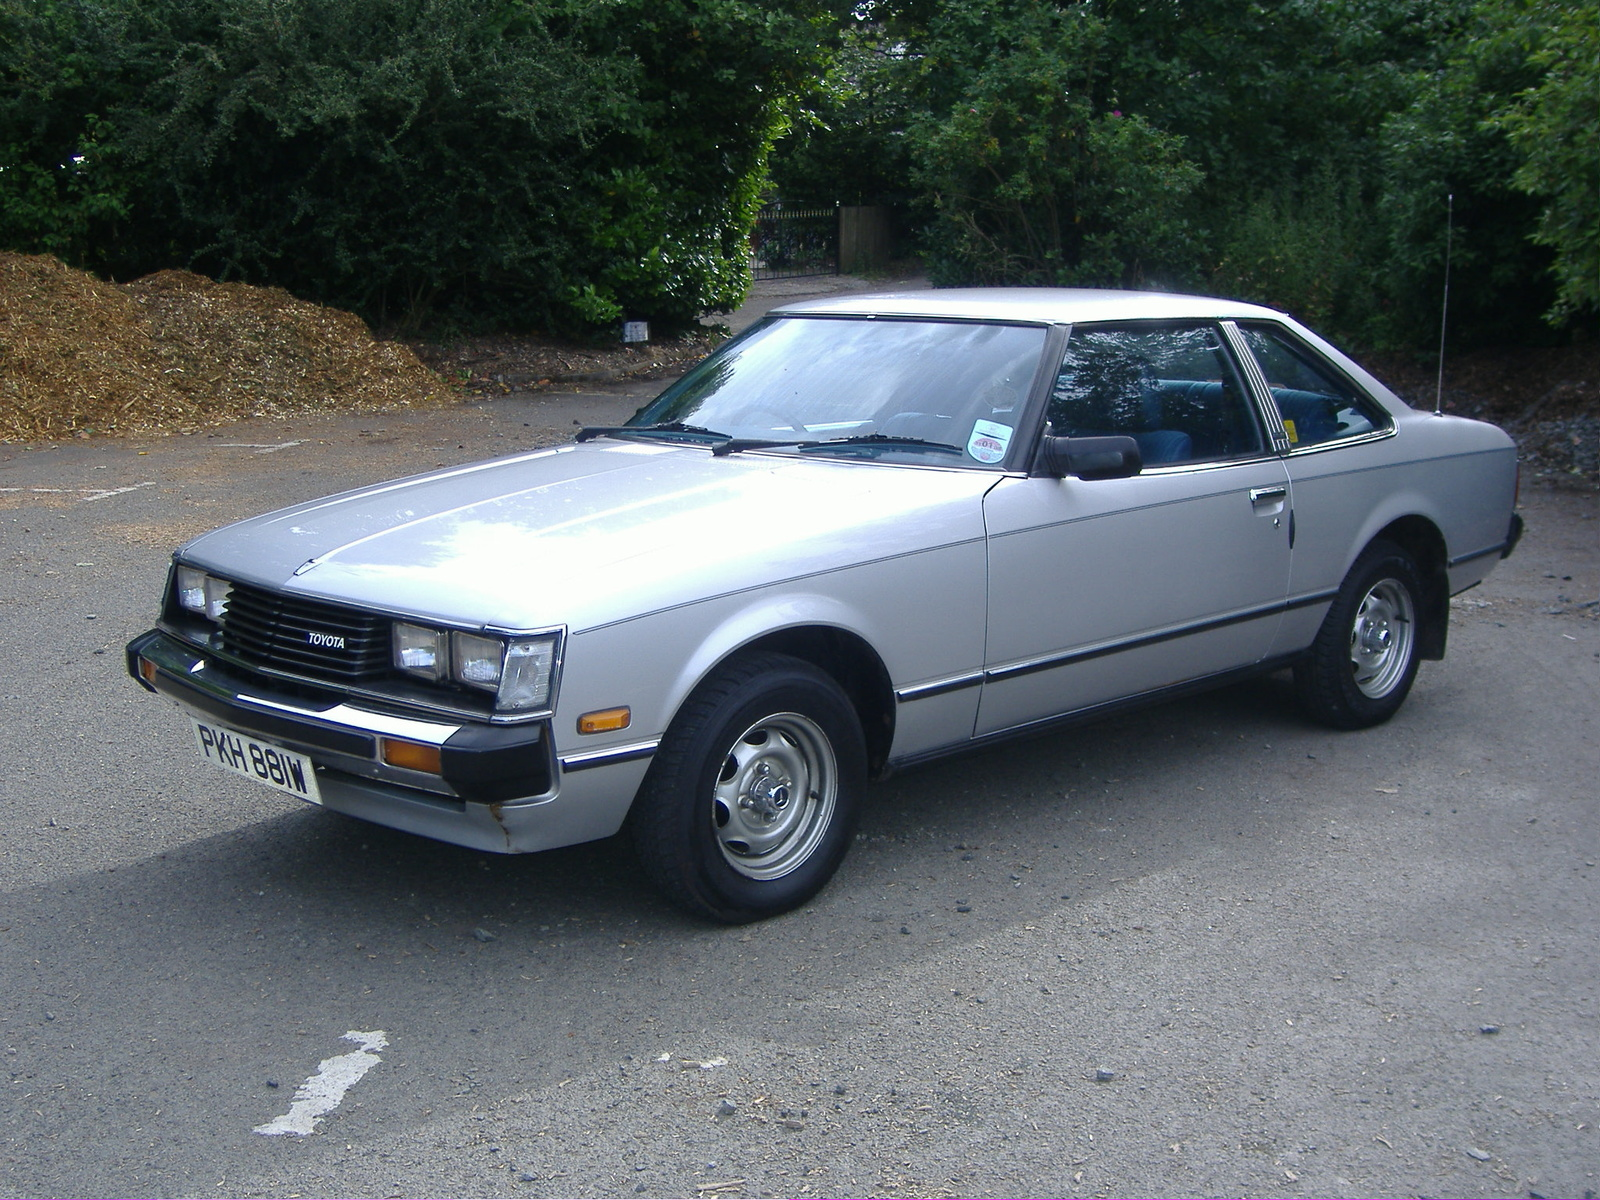 Toyota Corolla For Sale Near Me >> 1981 Toyota Celica - Pictures - CarGurus